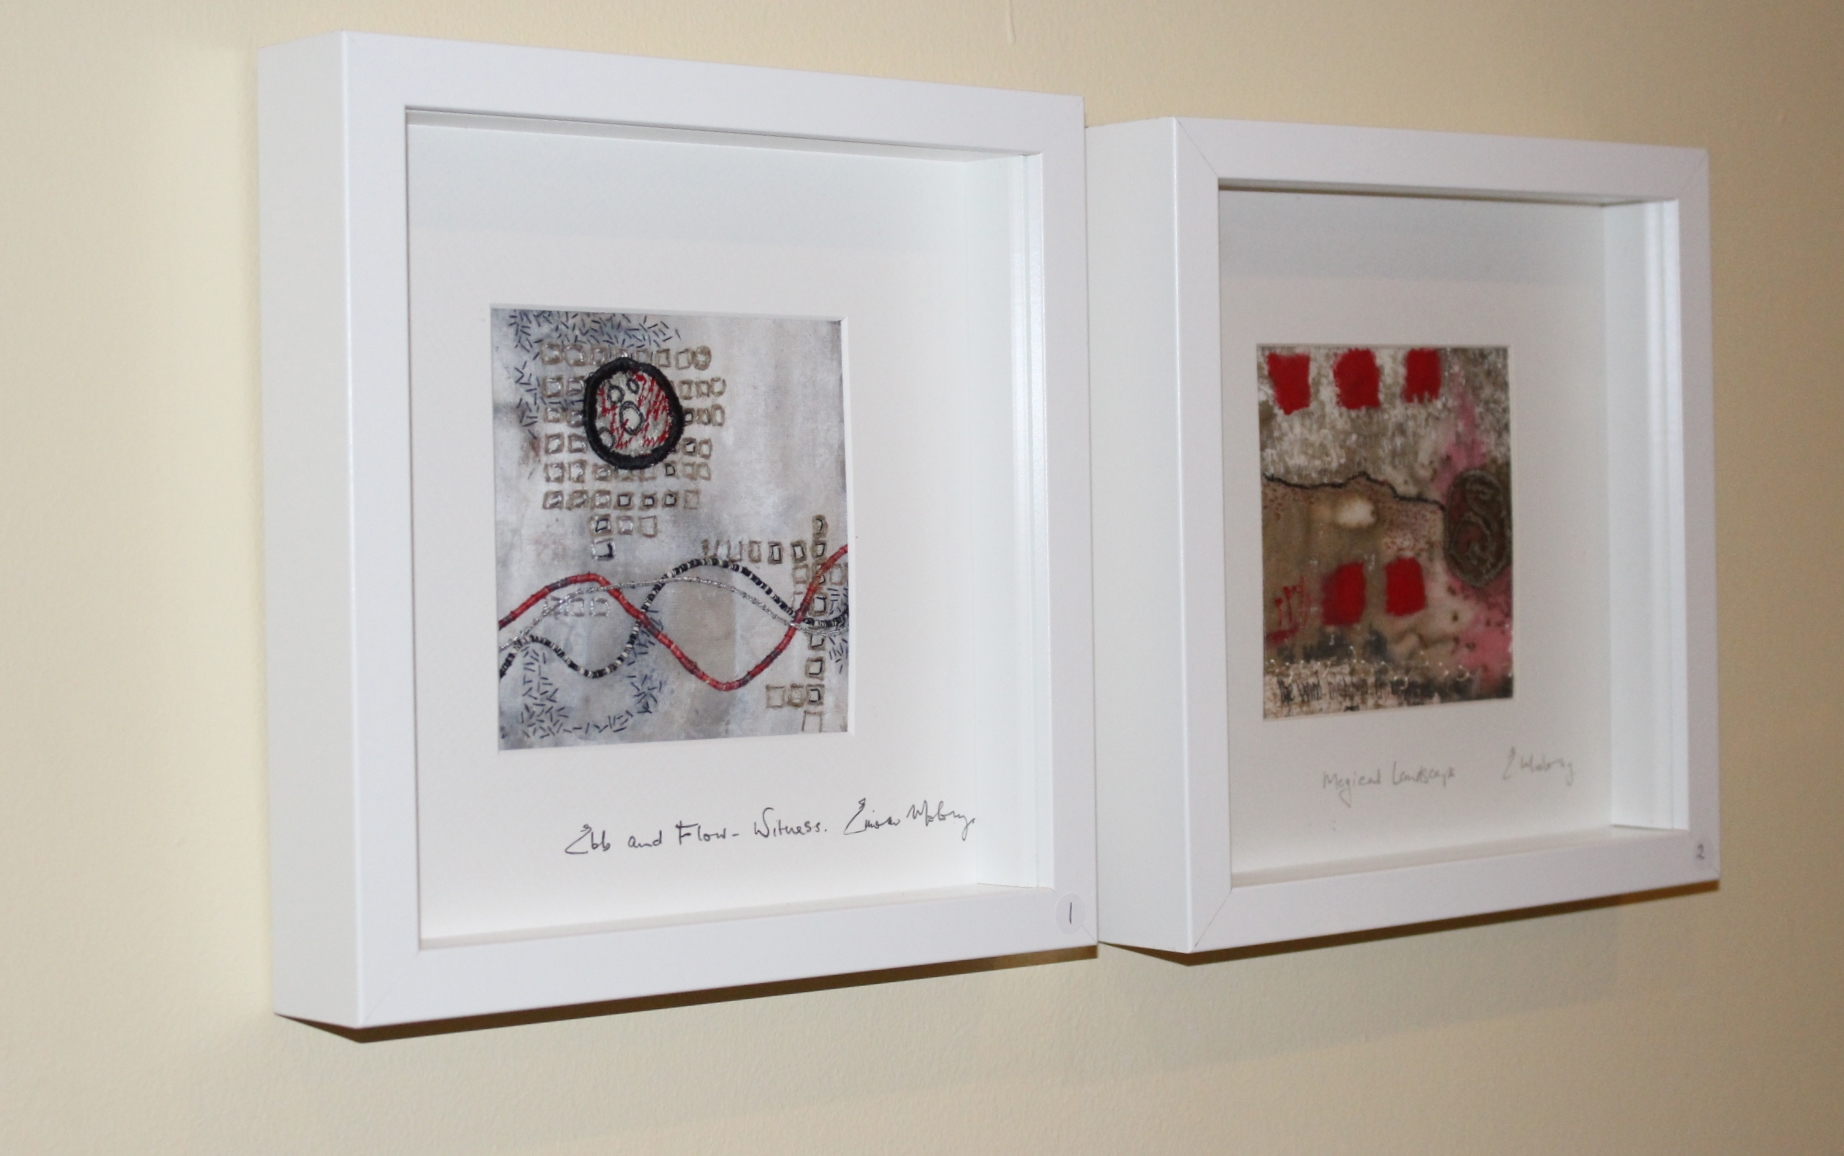 Exhibition at Two Cooks, Sallins, Co. Kildare